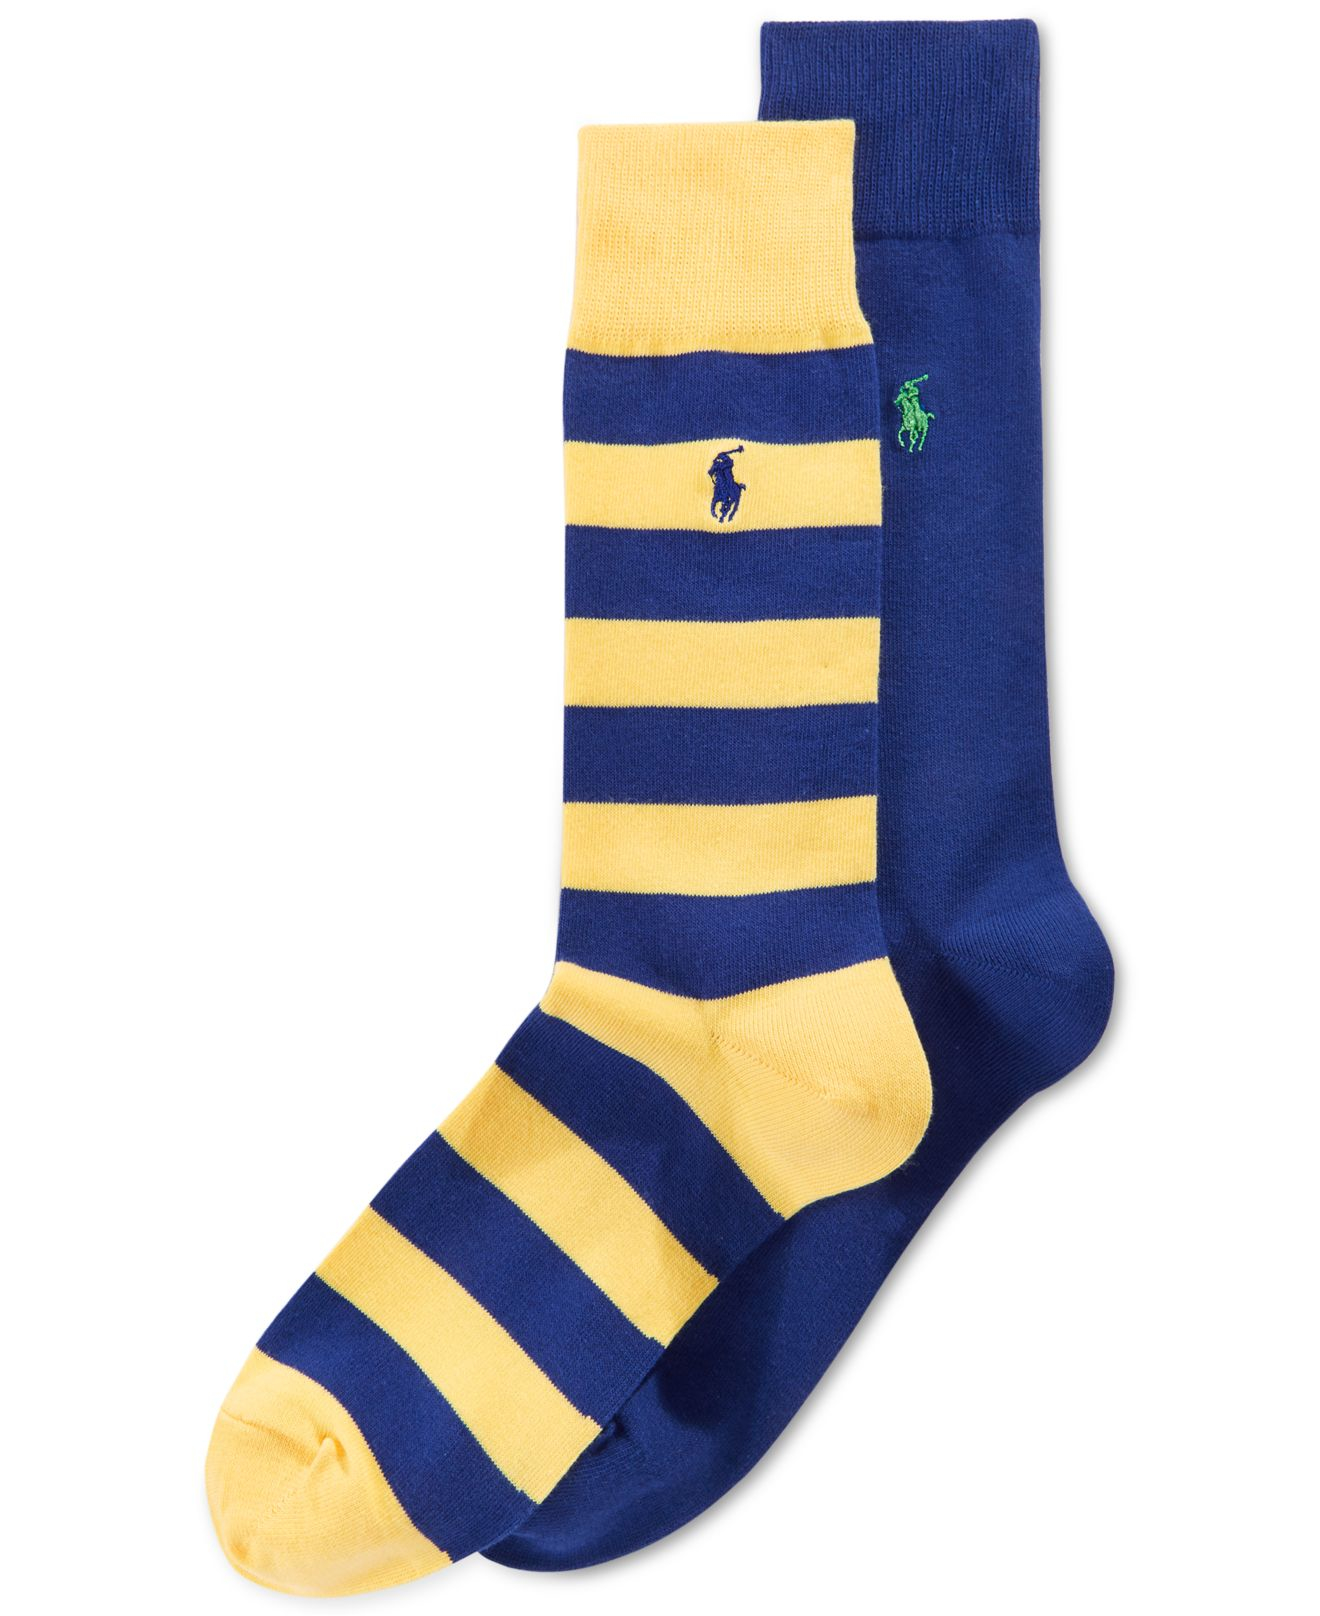 Lyst Polo Ralph Lauren Cotton Rugby Dress Socks 2 Pack in Blue for Men